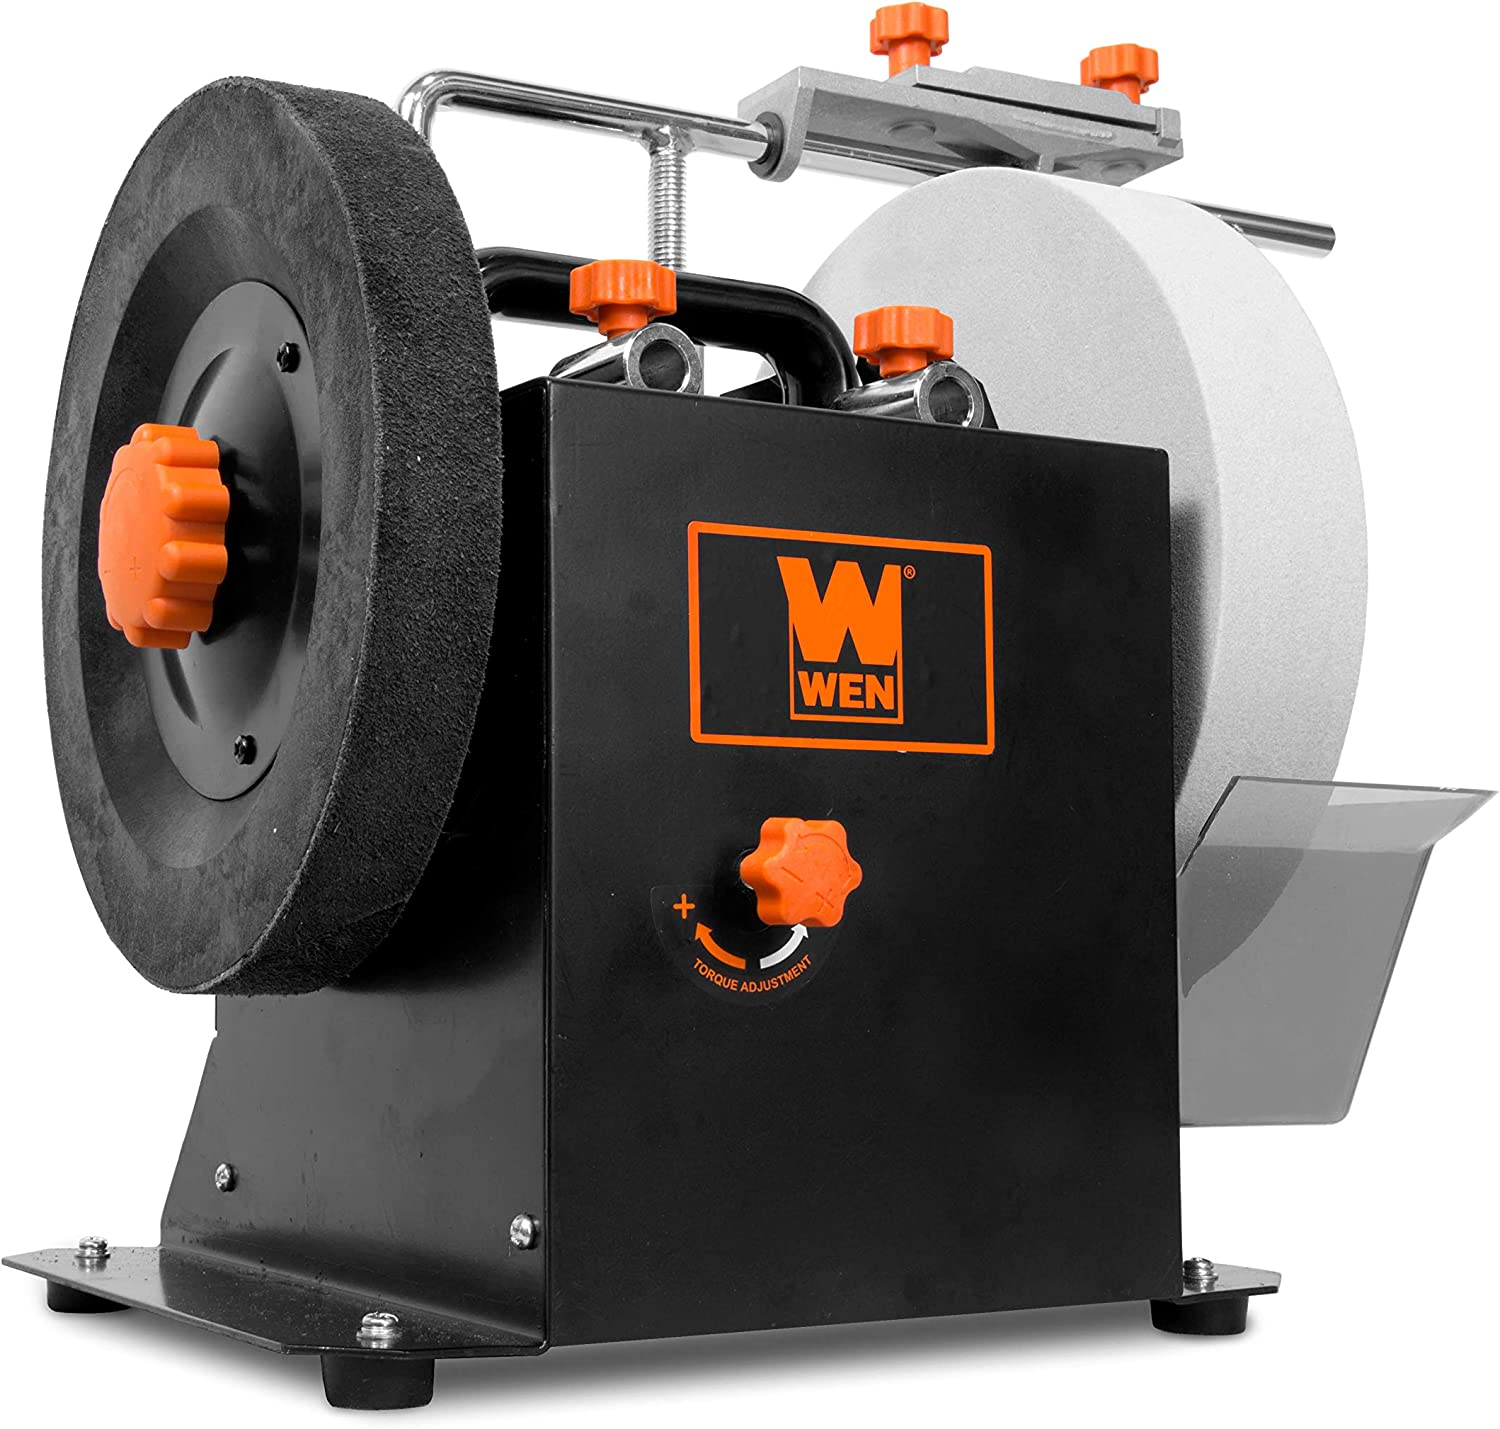 WEN BG9910 10-Inch Variable-Torque Water Cooled Wet and Dry Sharpening System